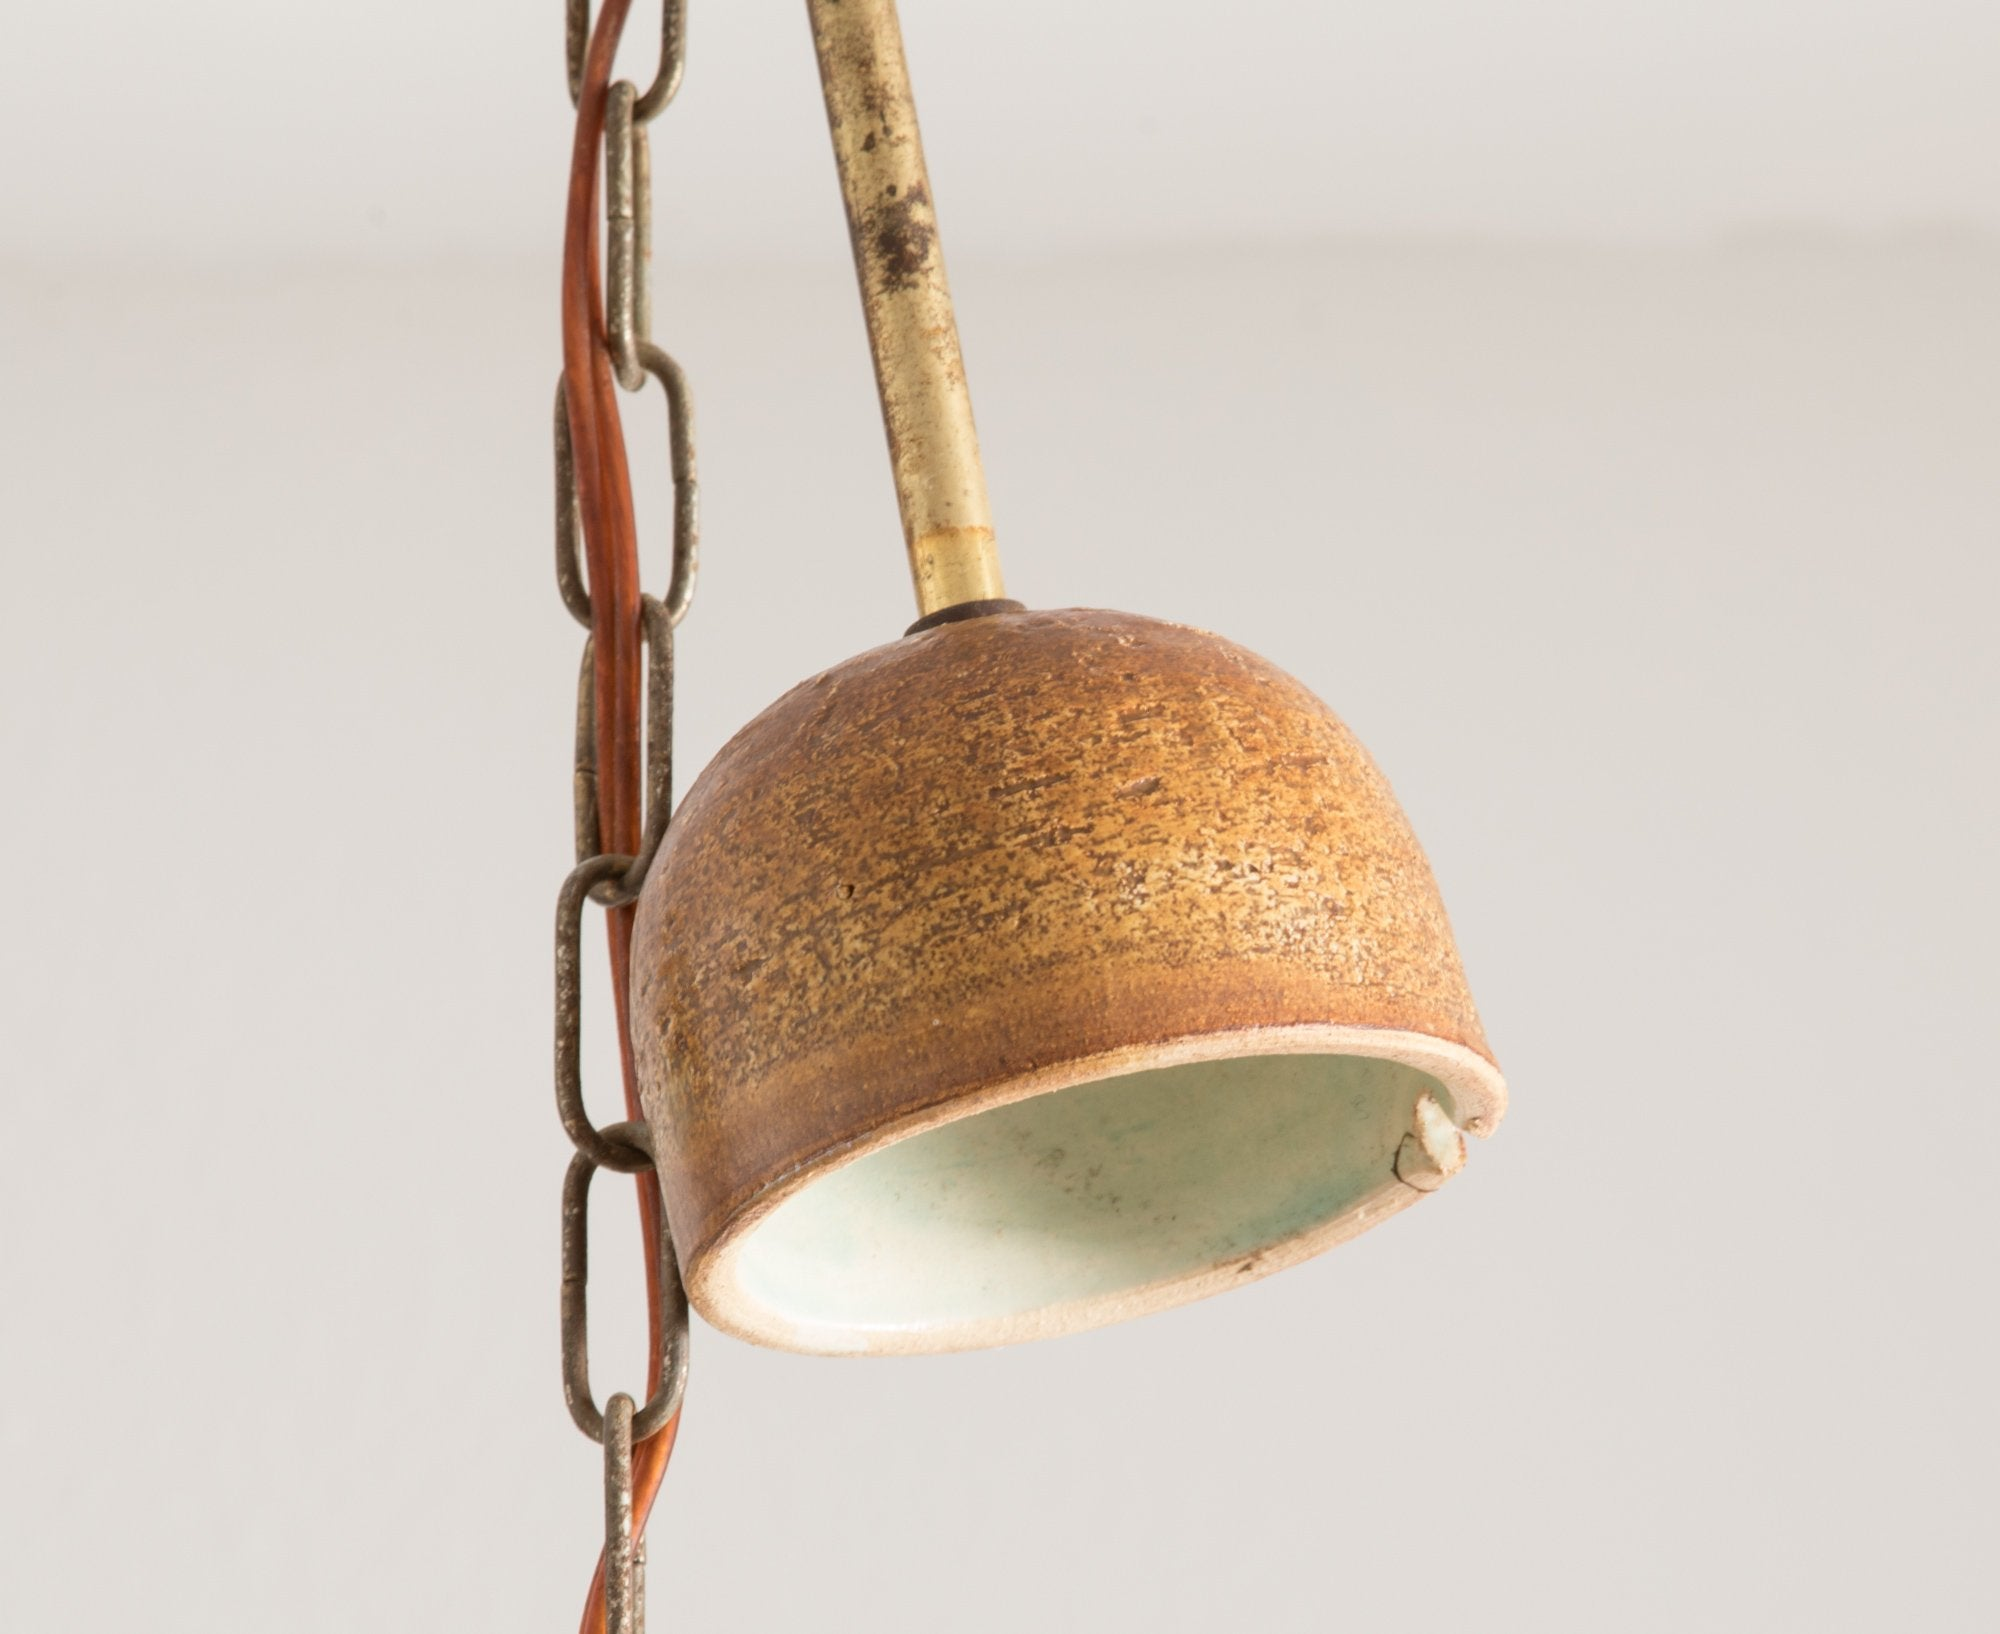 JETTE HELLERØE Large Abstract Decorated Ceramic Pendant Light - Mollaris.com